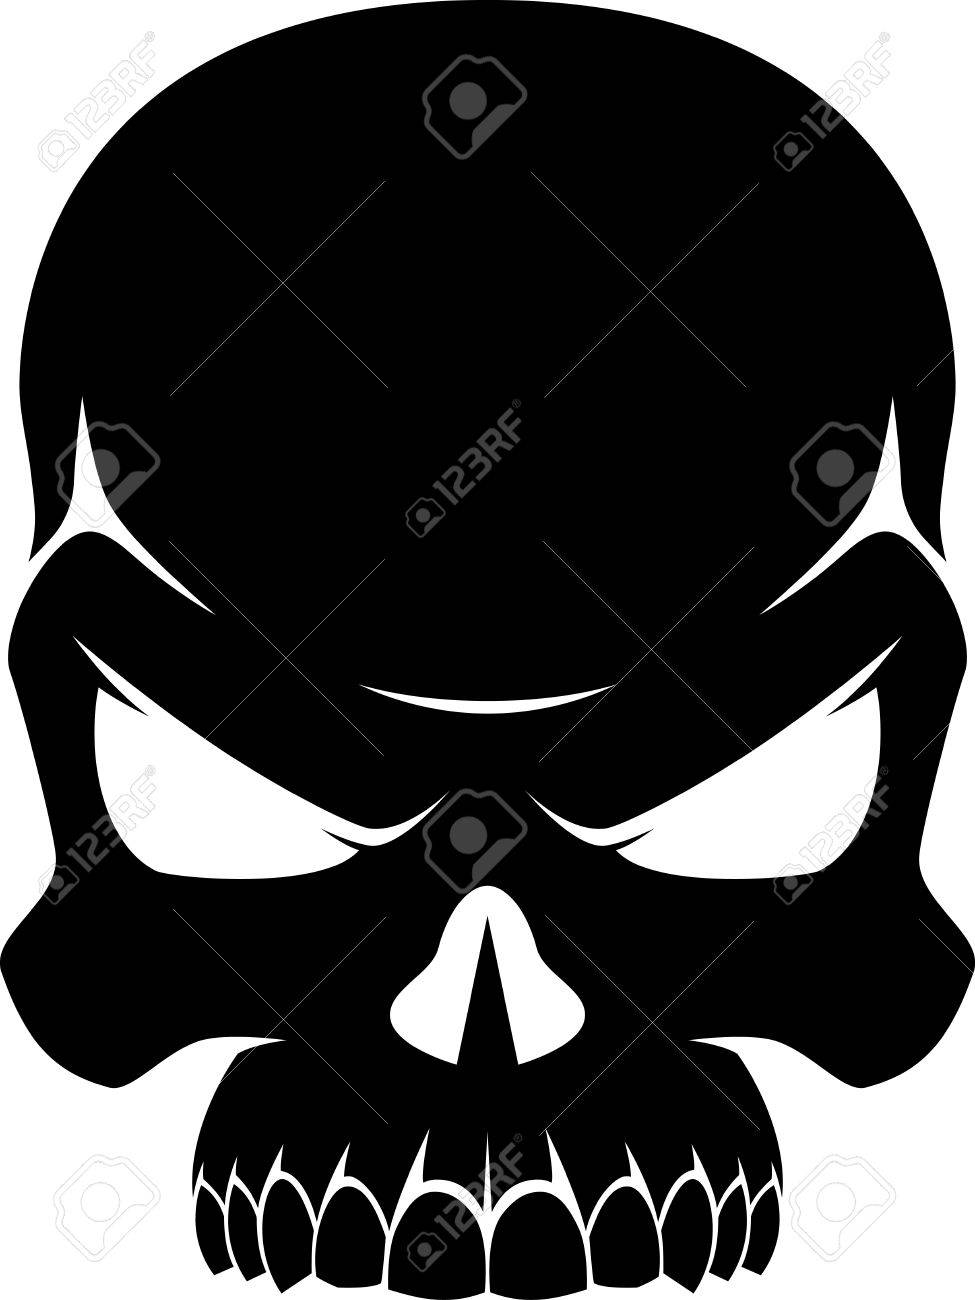 Silhouette Of A Skull.